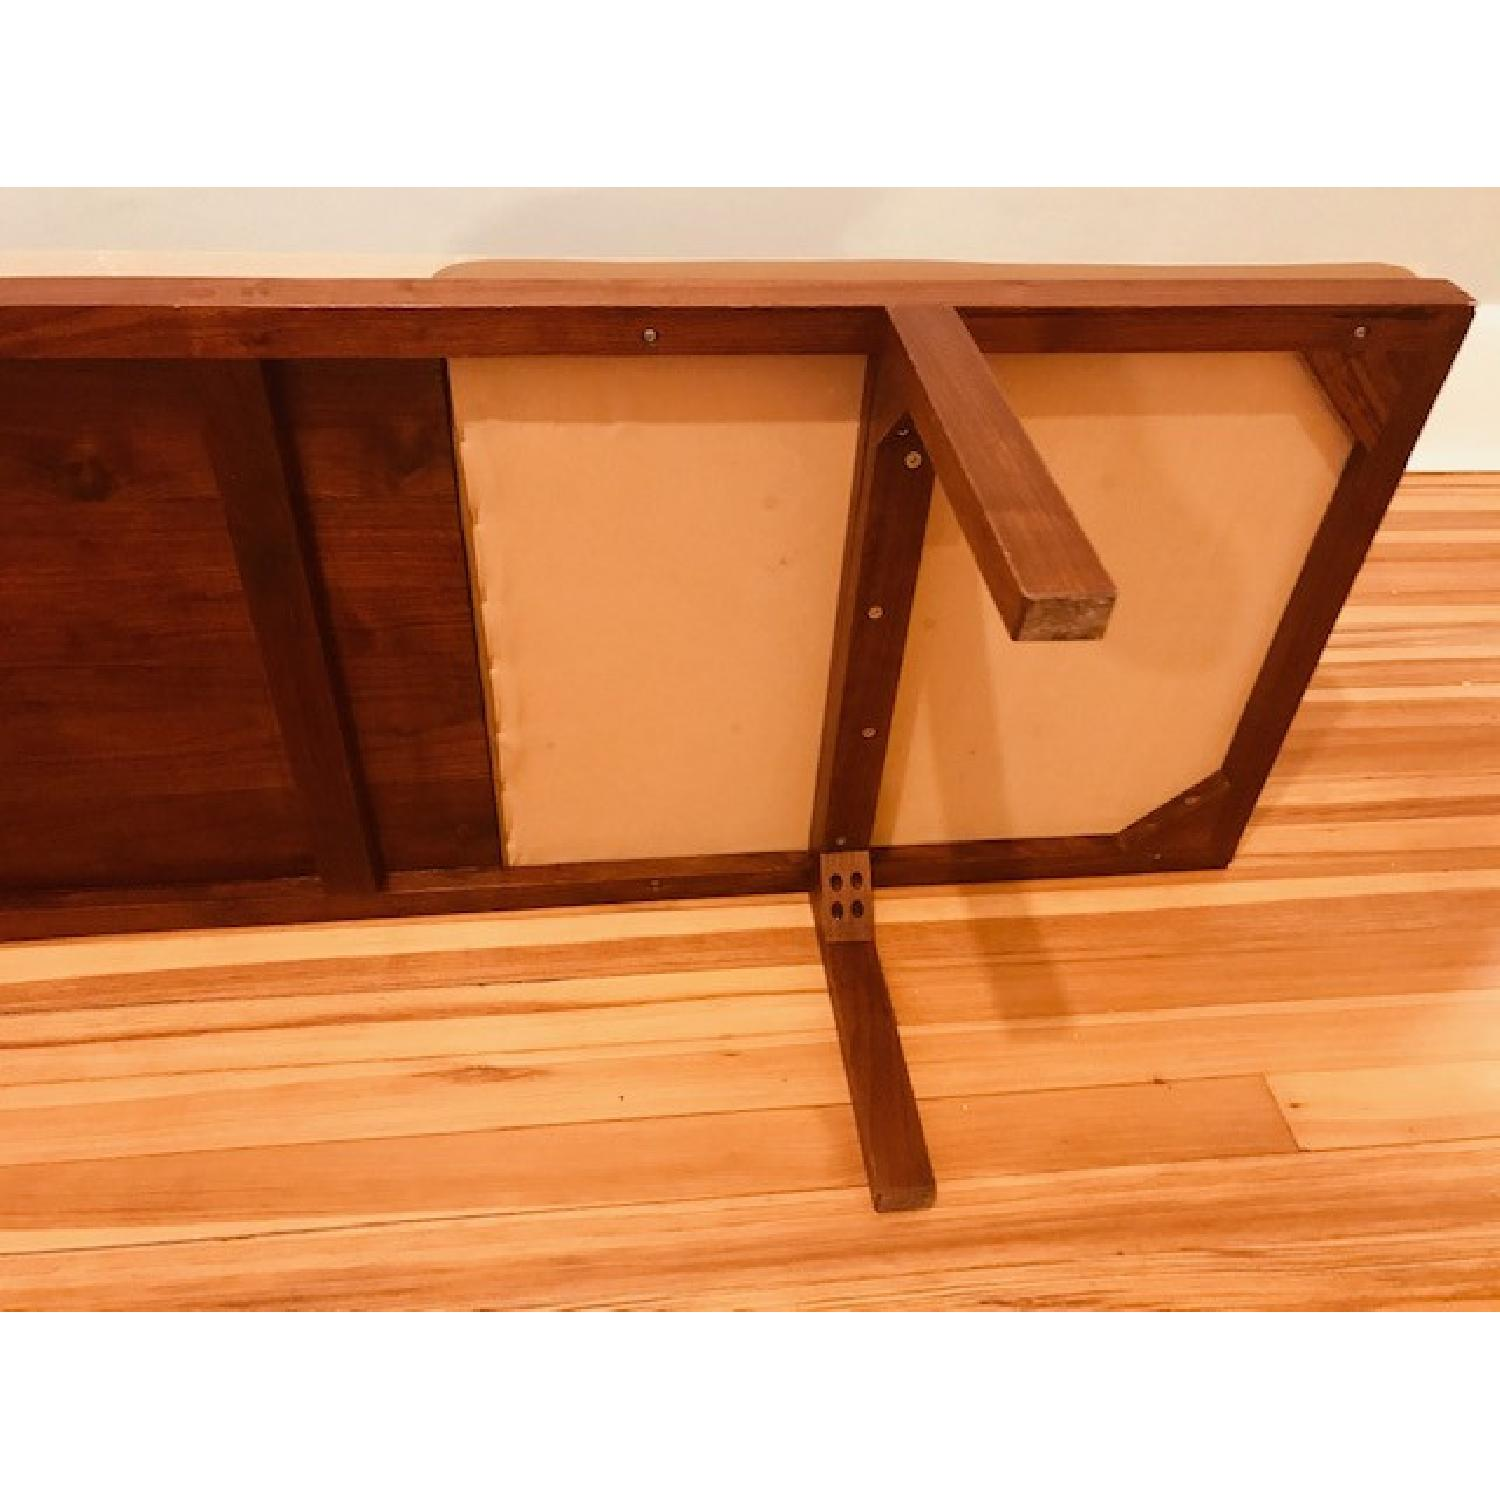 Organic Modernism Coffee Table/Mueller Bench - image-8